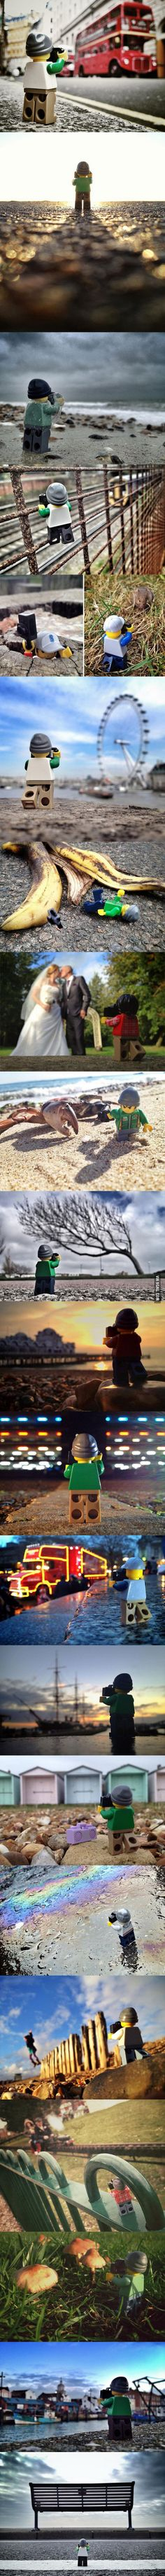 Funny pictures about LEGO Photographer Travels The World. Oh, and cool pics about LEGO Photographer Travels The World. Also, LEGO Photographer Travels The World photos. Perspective Photography, Lego Photography, Photography Projects, Macro Photography, Creative Photography, Amazing Photography, Landscape Photography, Wedding Photography, Perspective Photos